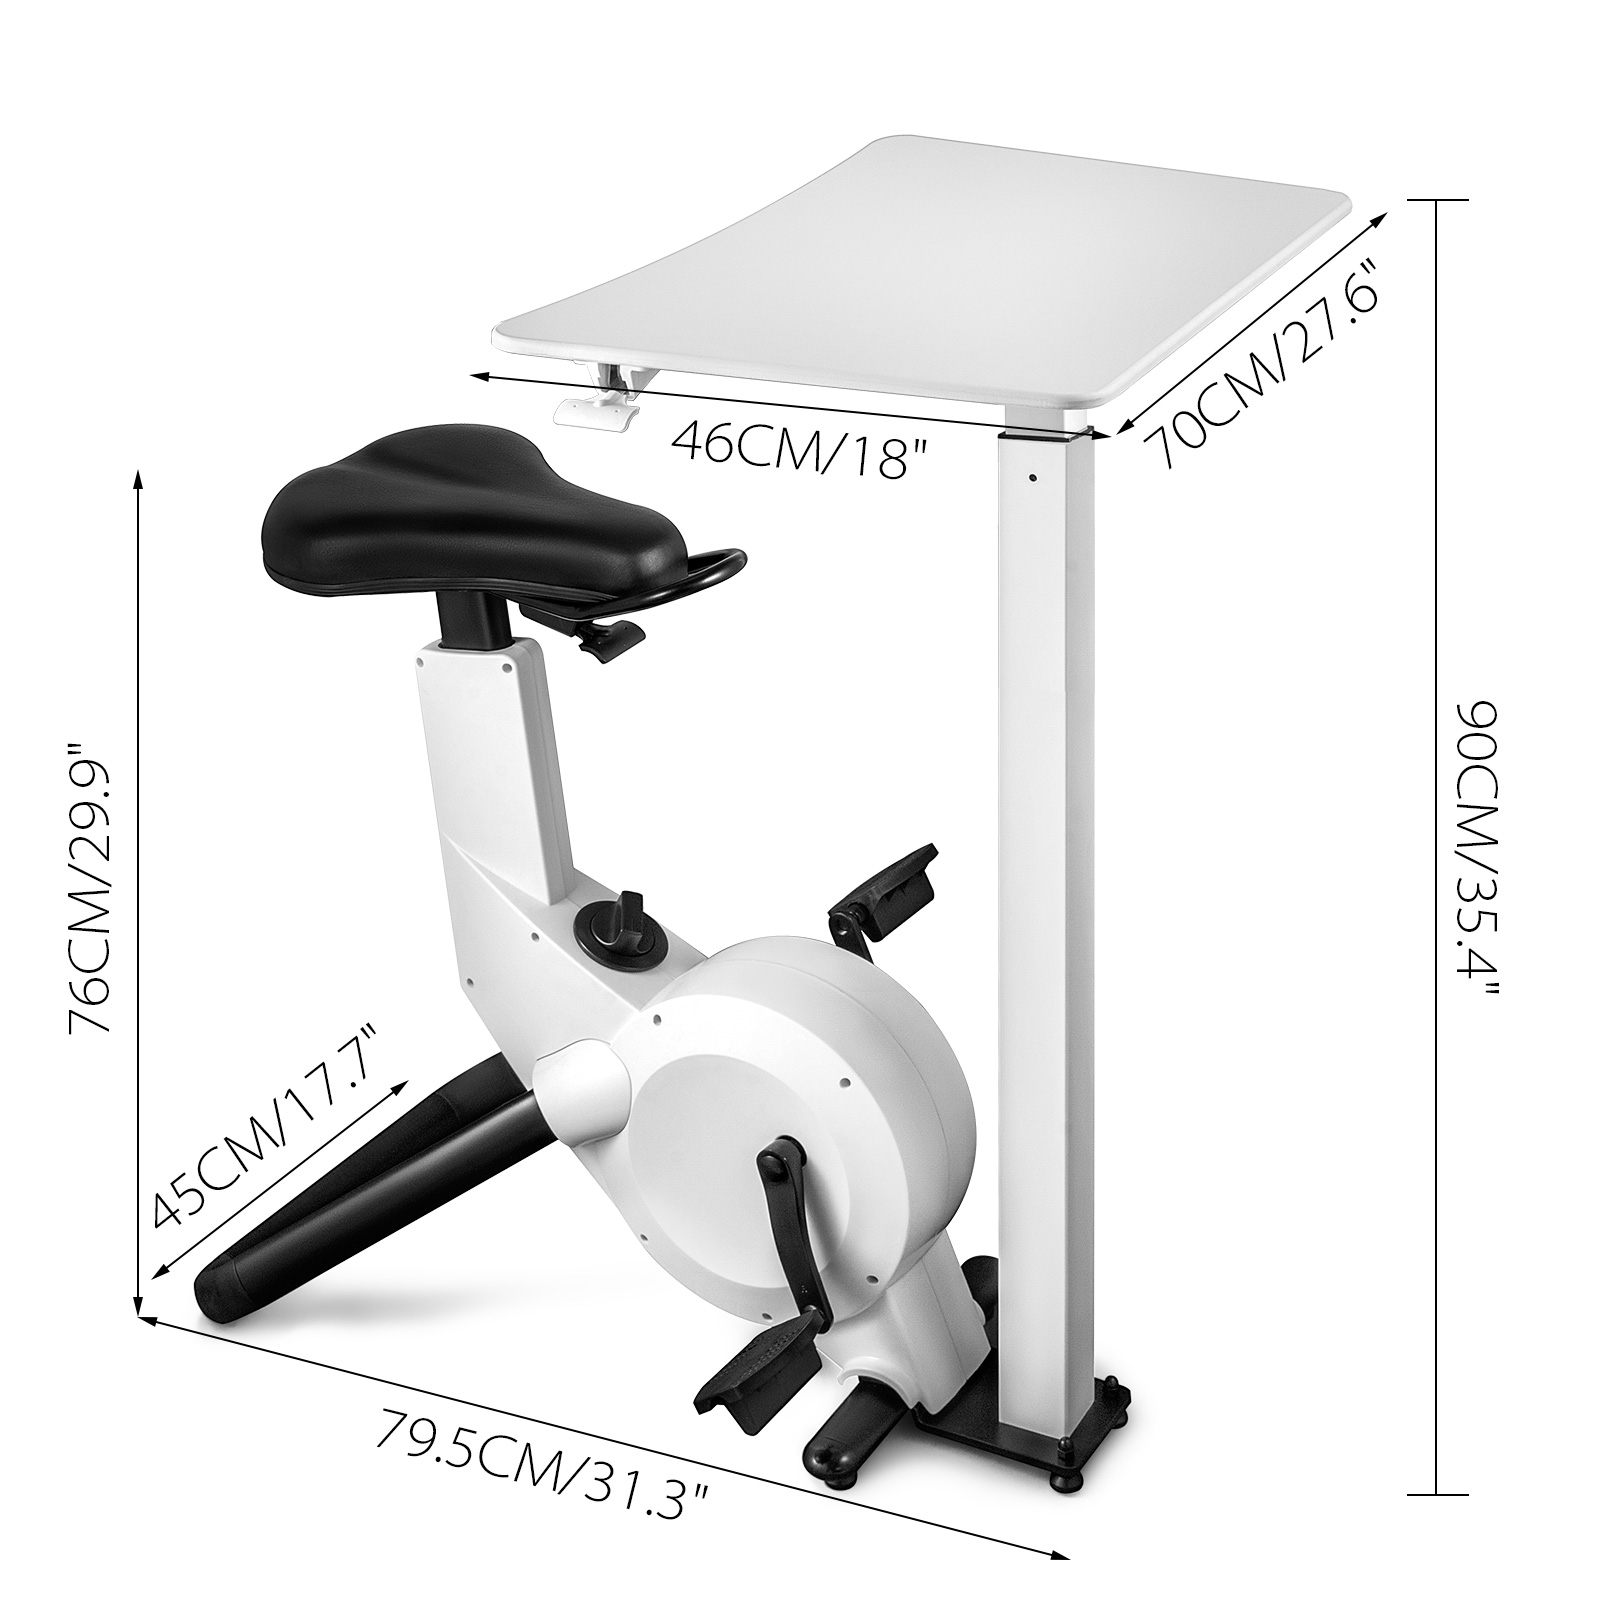 Multi-style-Magnetic-Exercise-Bike-office-Bicycle-under-Desk-Fitness-Cardio miniature 116